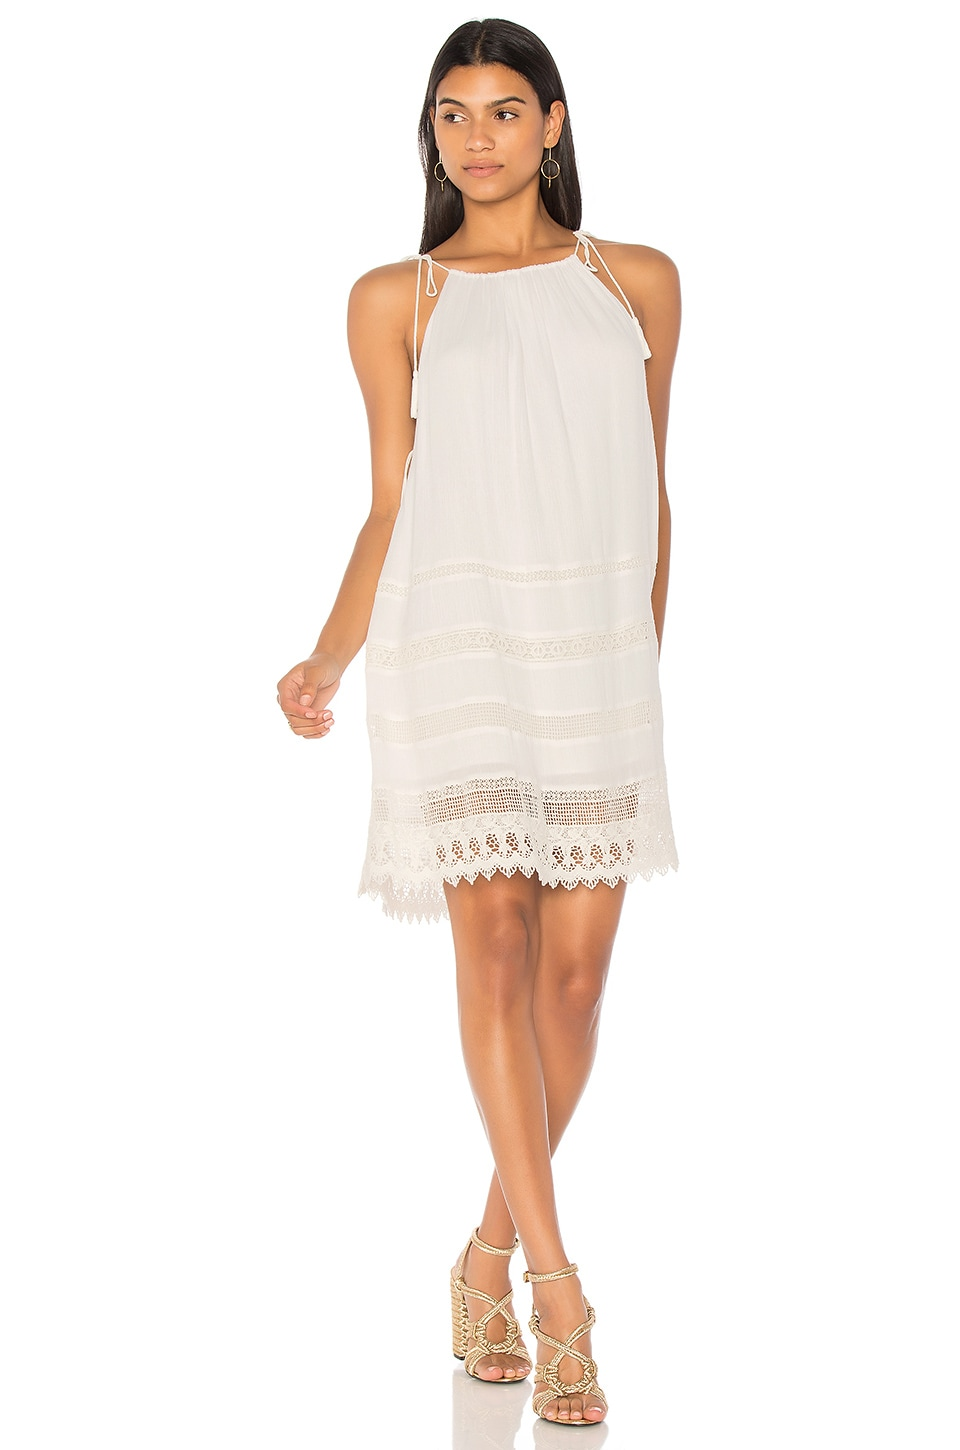 Alice   Olivia Danna Dress in White | REVOLVE